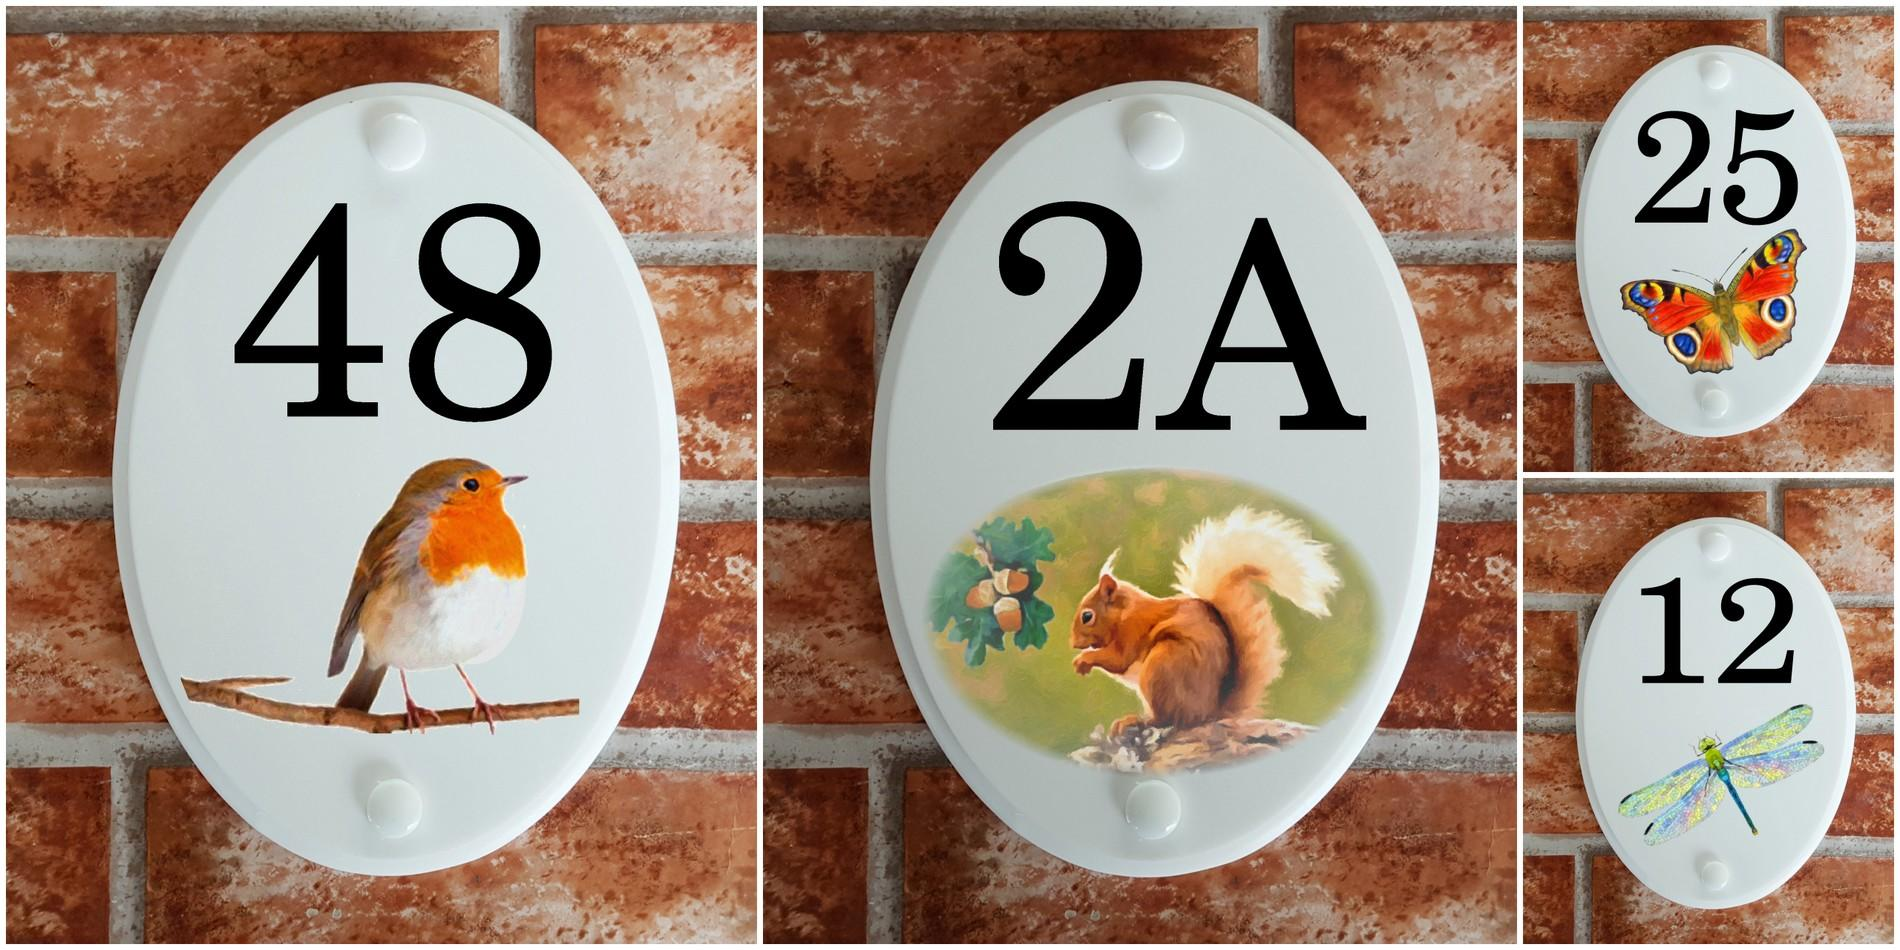 House number plaques with Animal motifs